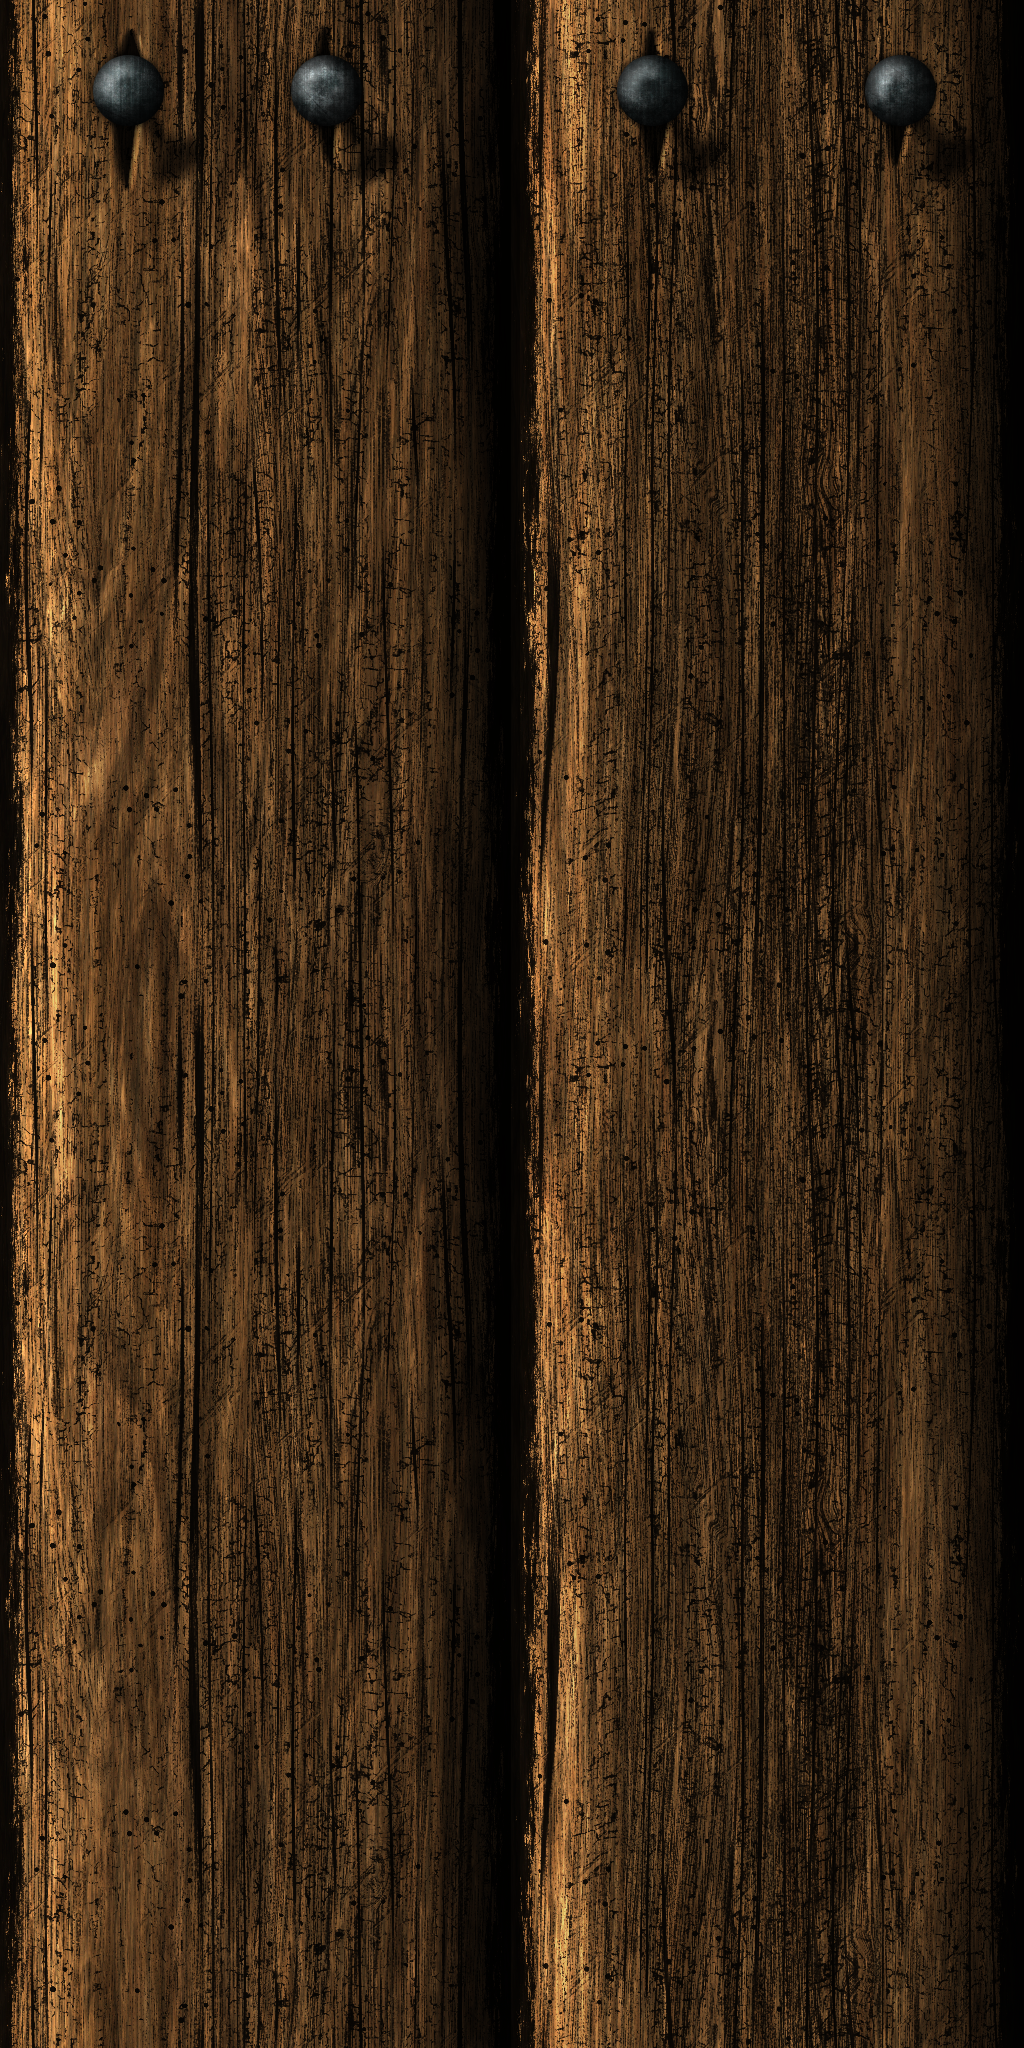 wood8_by_hoover1979-dbv3bhl.png